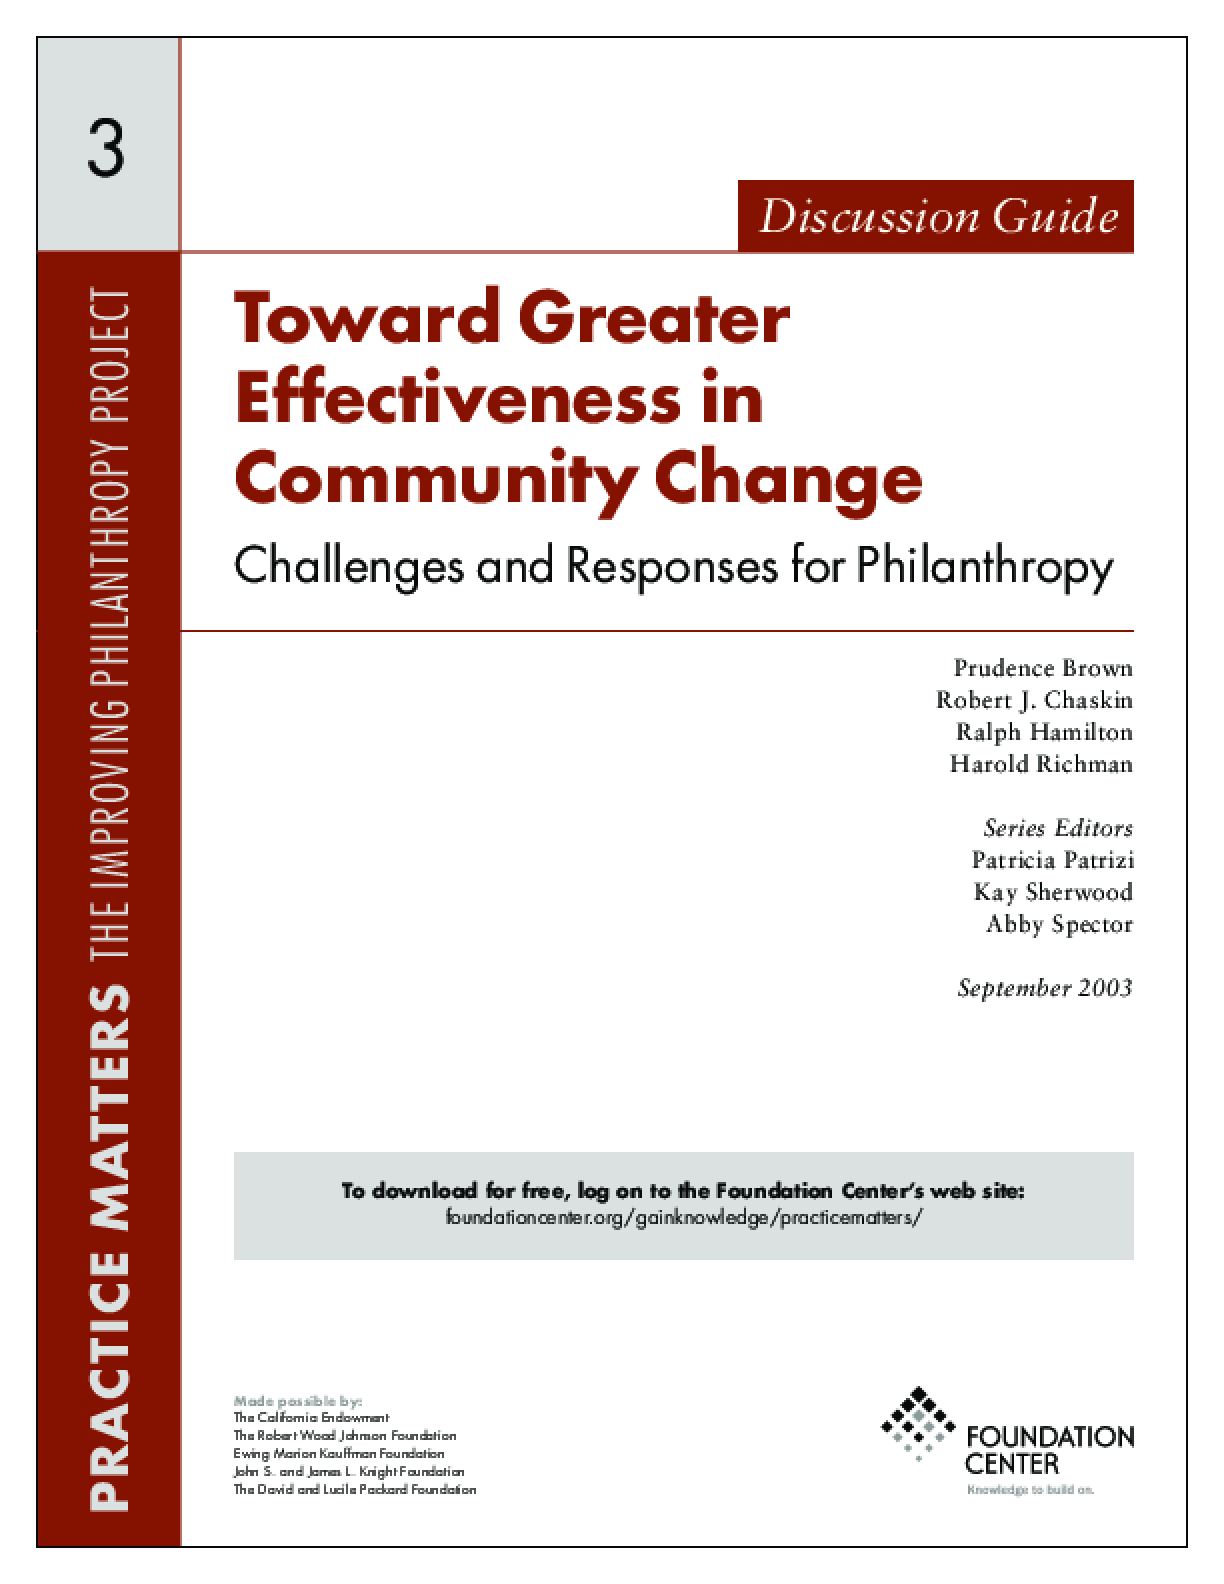 Toward Greater Effectiveness in Community Change: Challenges and Responses for Philanthropy - Discussion Guide